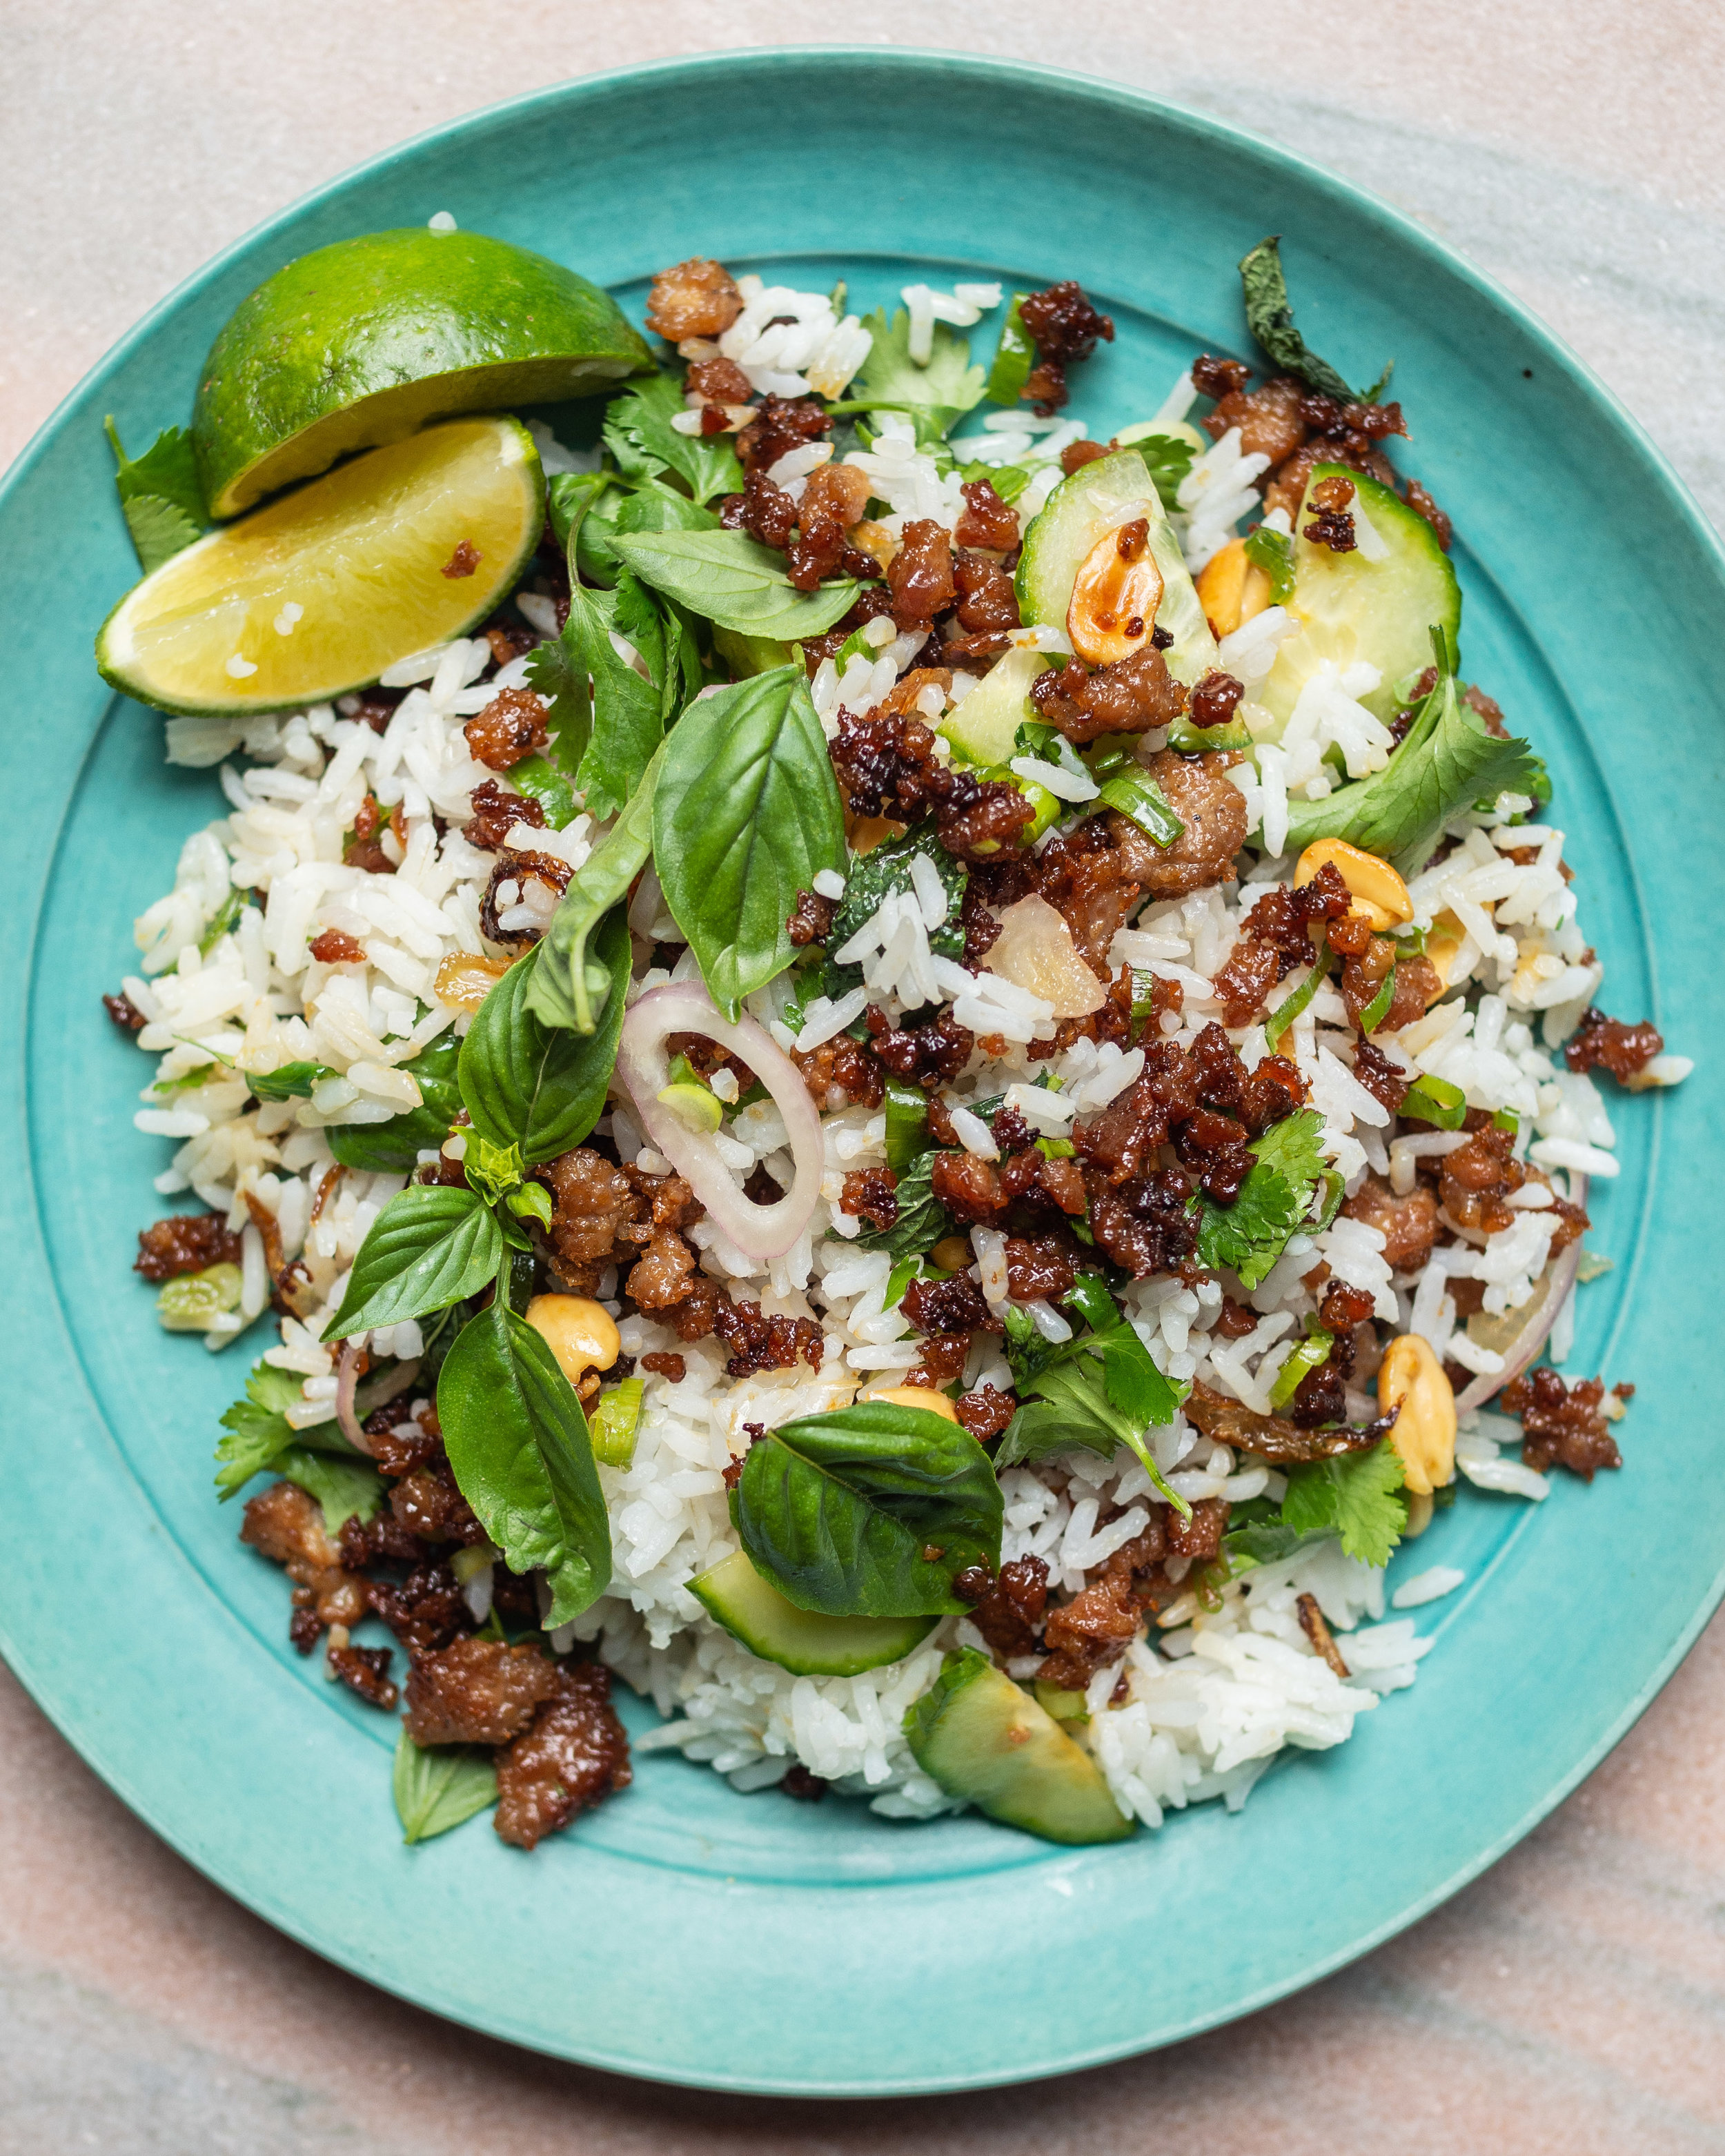 Crispy Pork Rice Salad with Fish Sauce